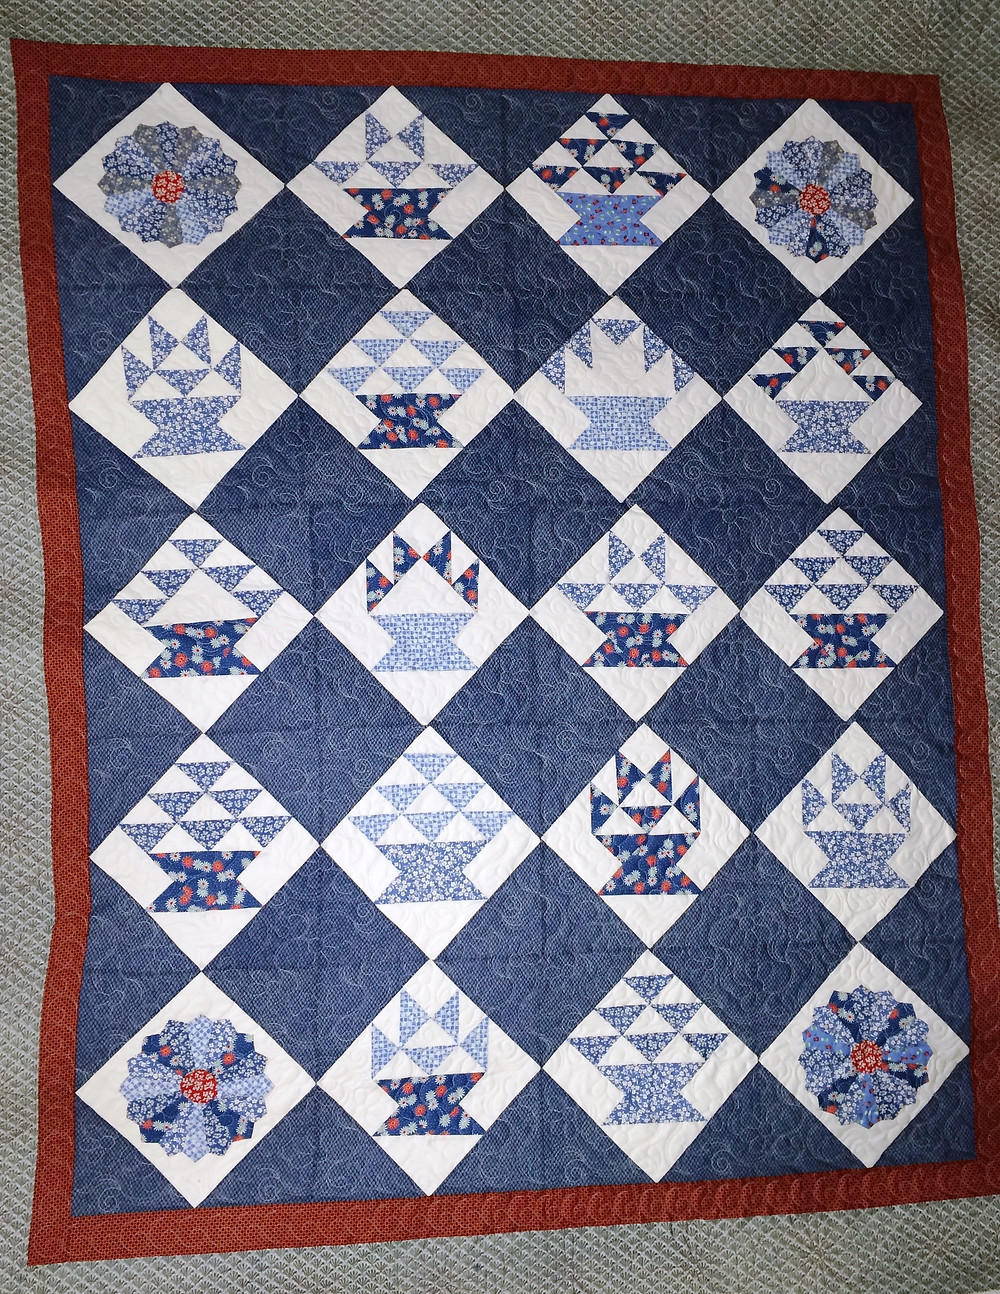 Red White and Blue Flower Baskets Quilt by Sue Lindsay